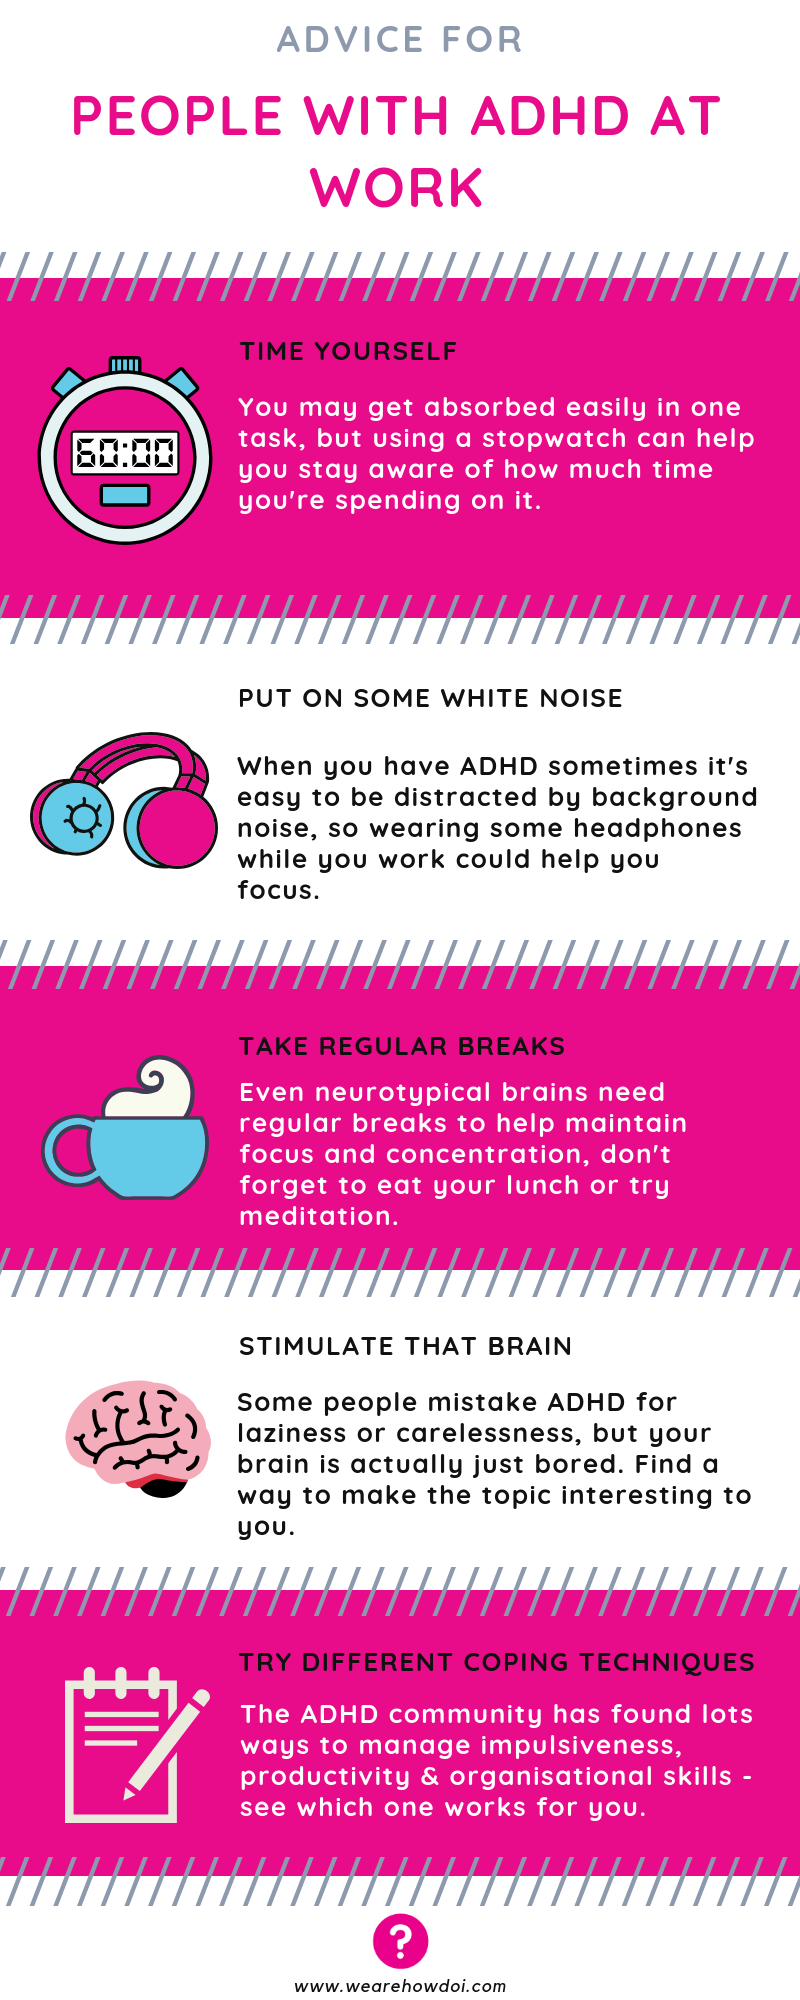 Advice for People with ADHD at Work.png